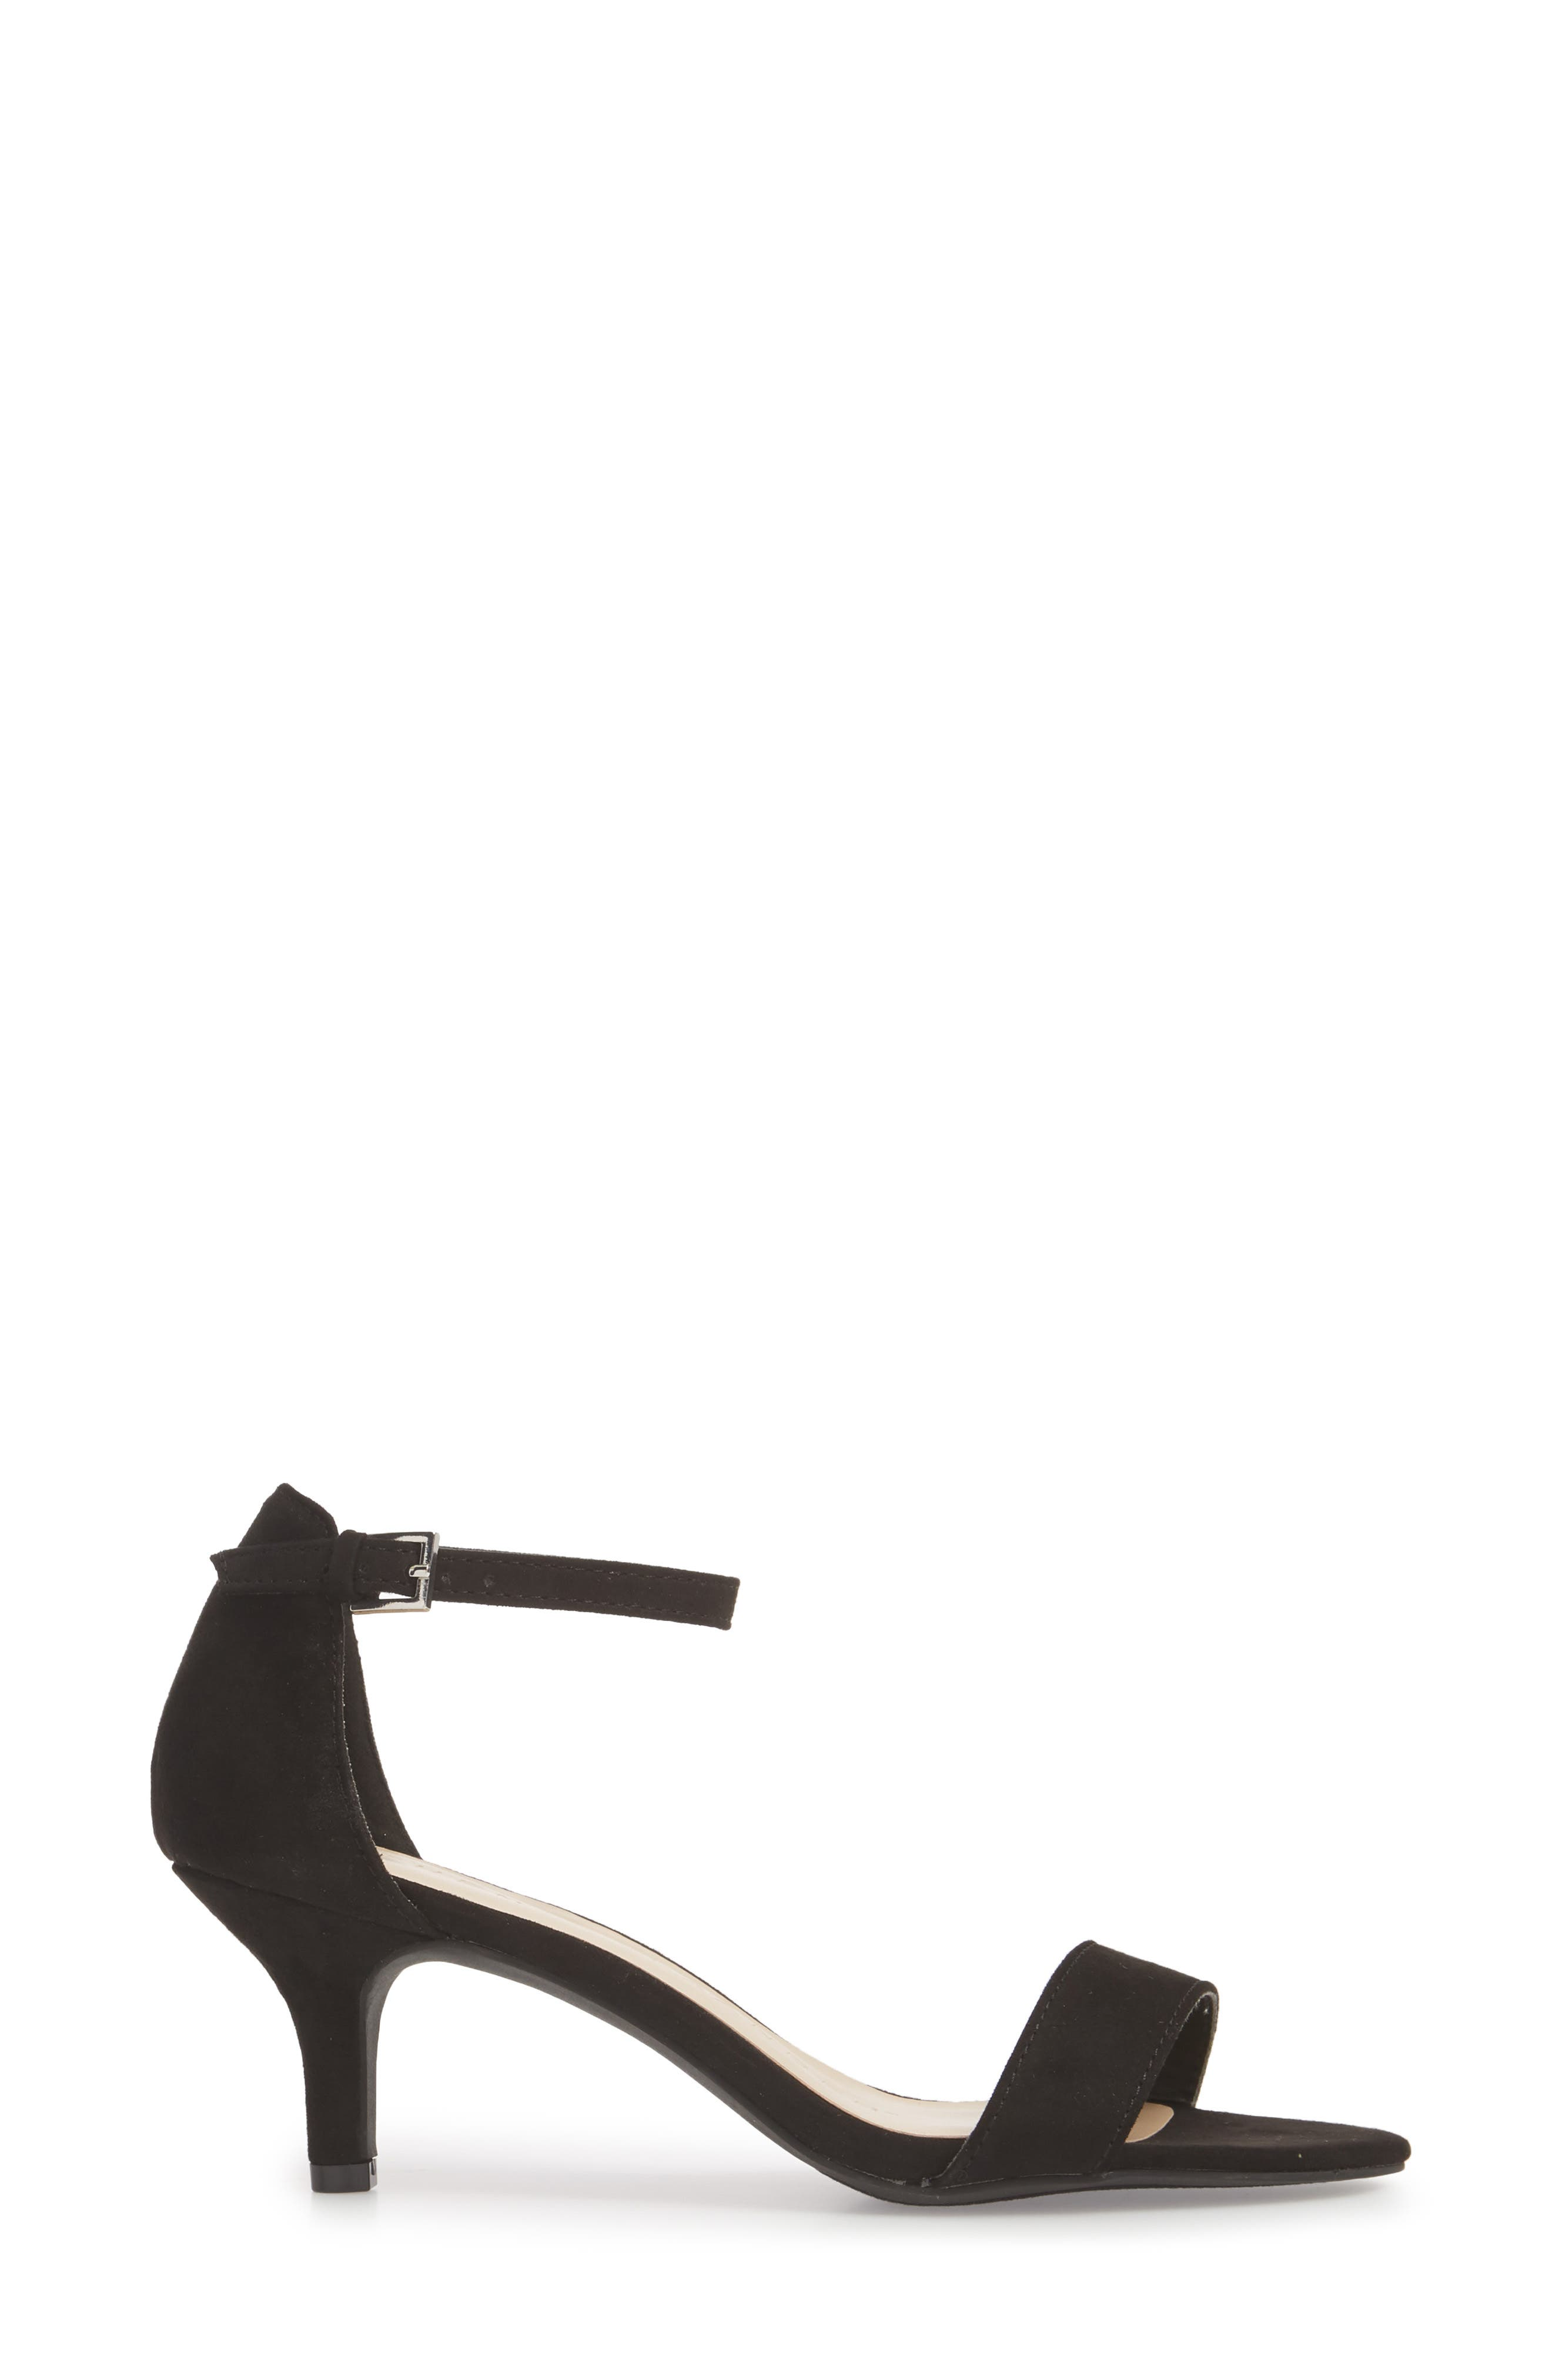 Monroe Sandal,                             Alternate thumbnail 3, color,                             BLACK SUEDE